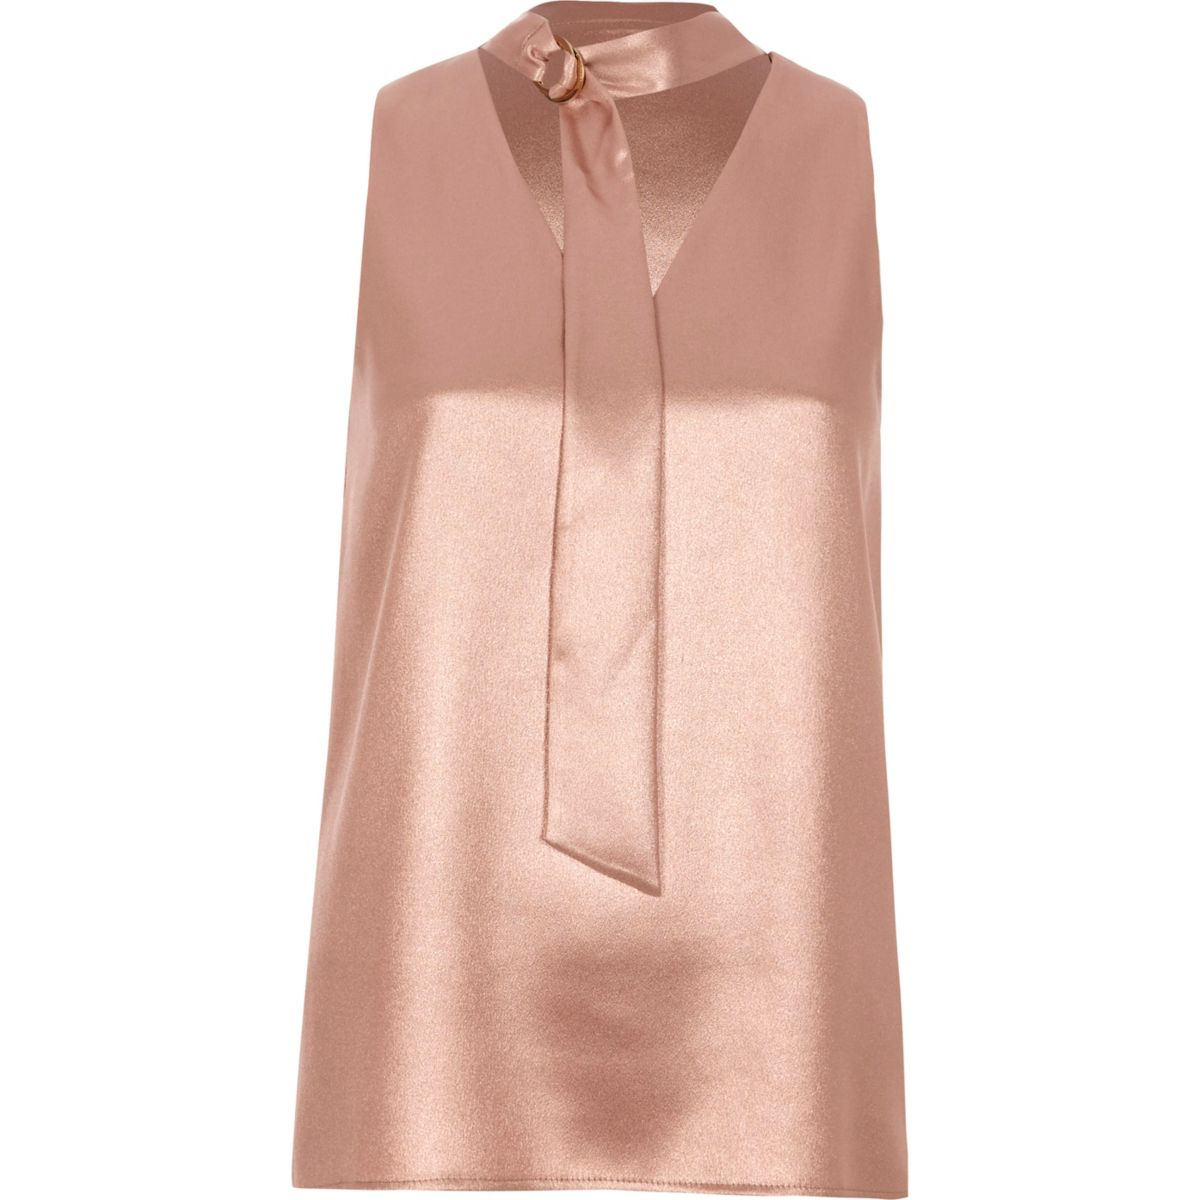 Pink metallic D-ring tie neck sleeveless top